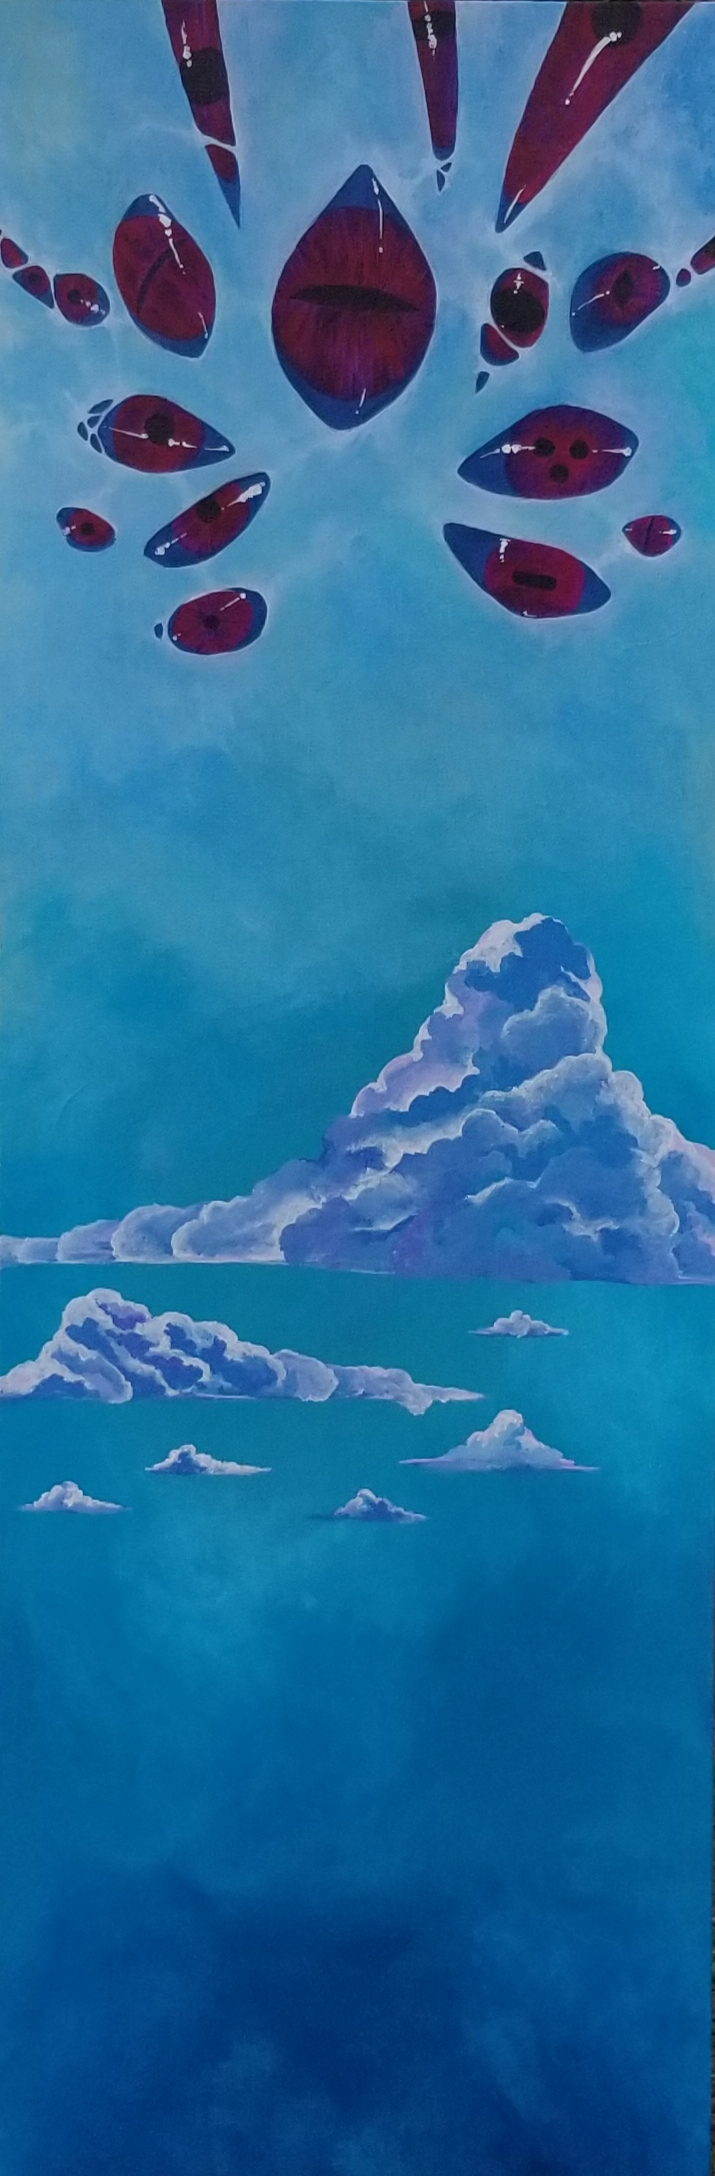 acrylic painting of a cluster of dark purple eyes opening high in a membrane like sky over puffy blue and white clouds